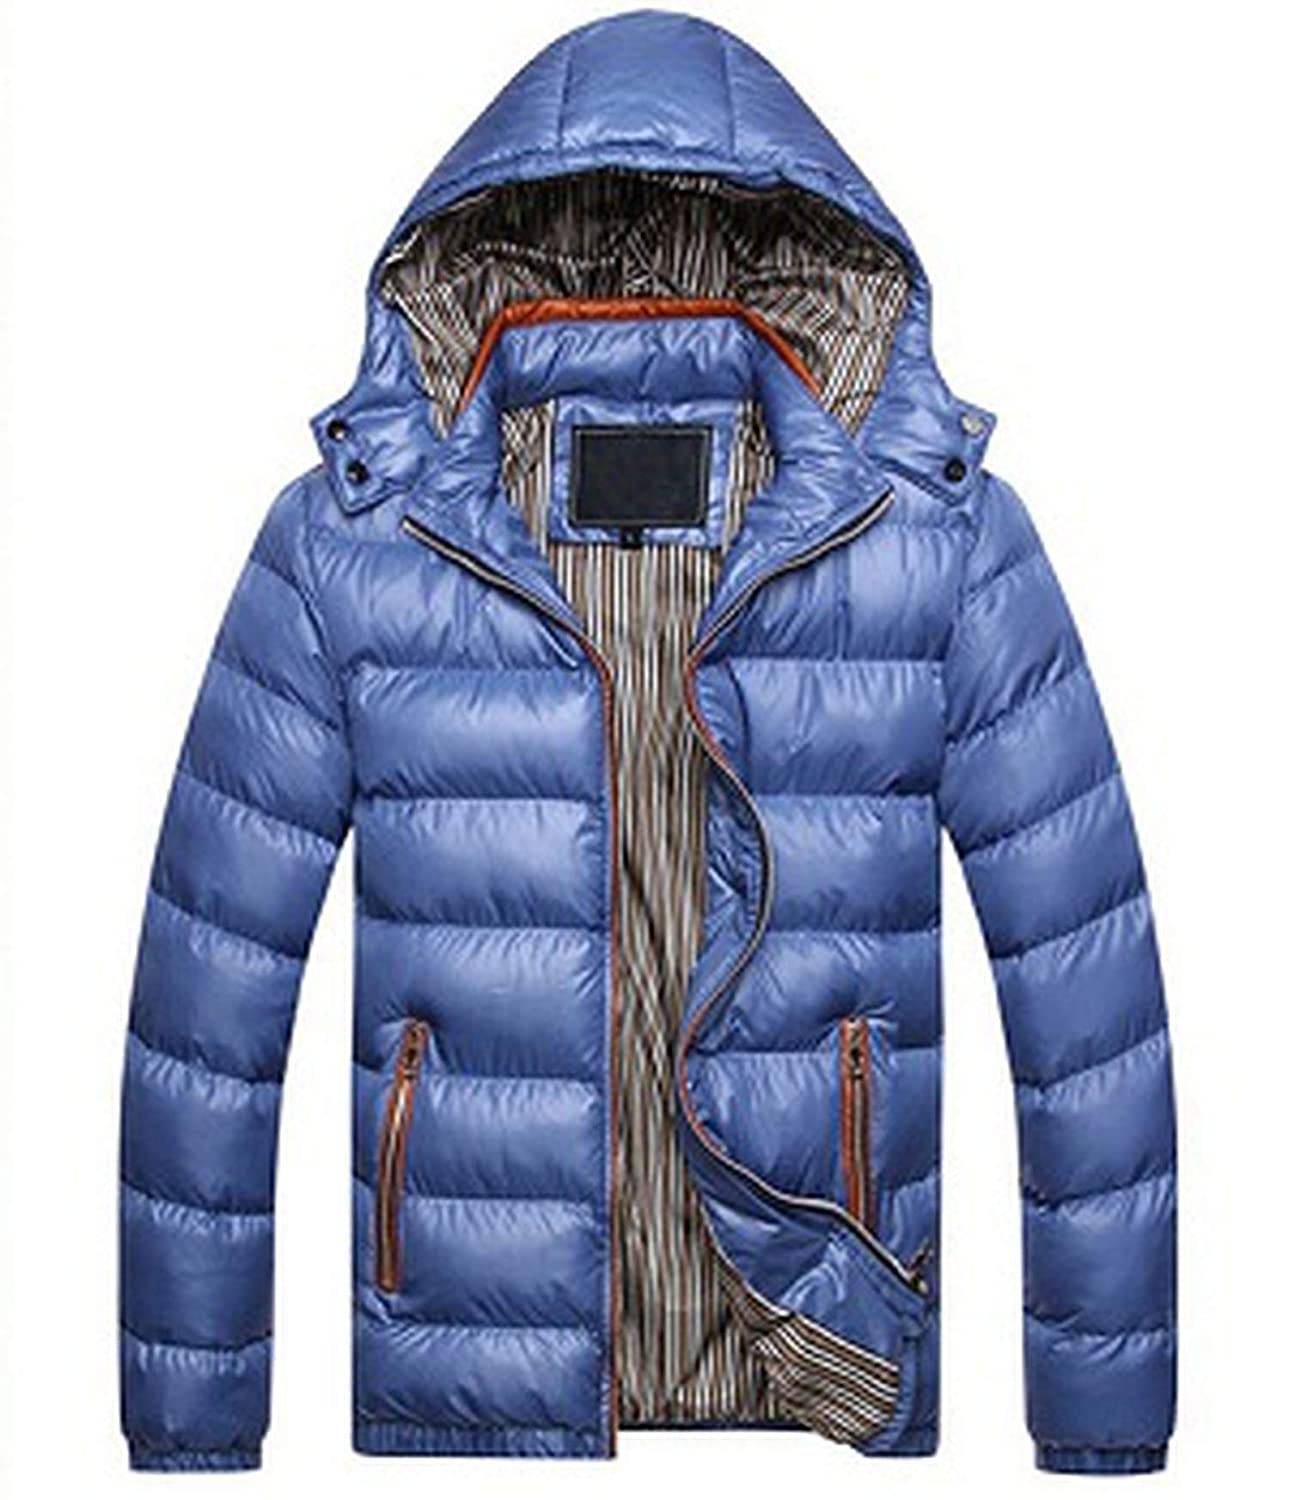 be-my-guest Men Jacket Warm Coat Outwear Winter Spring Parka Chaquetas Plumas Hombre Men Coats and Jackets at Amazon Mens Clothing store: